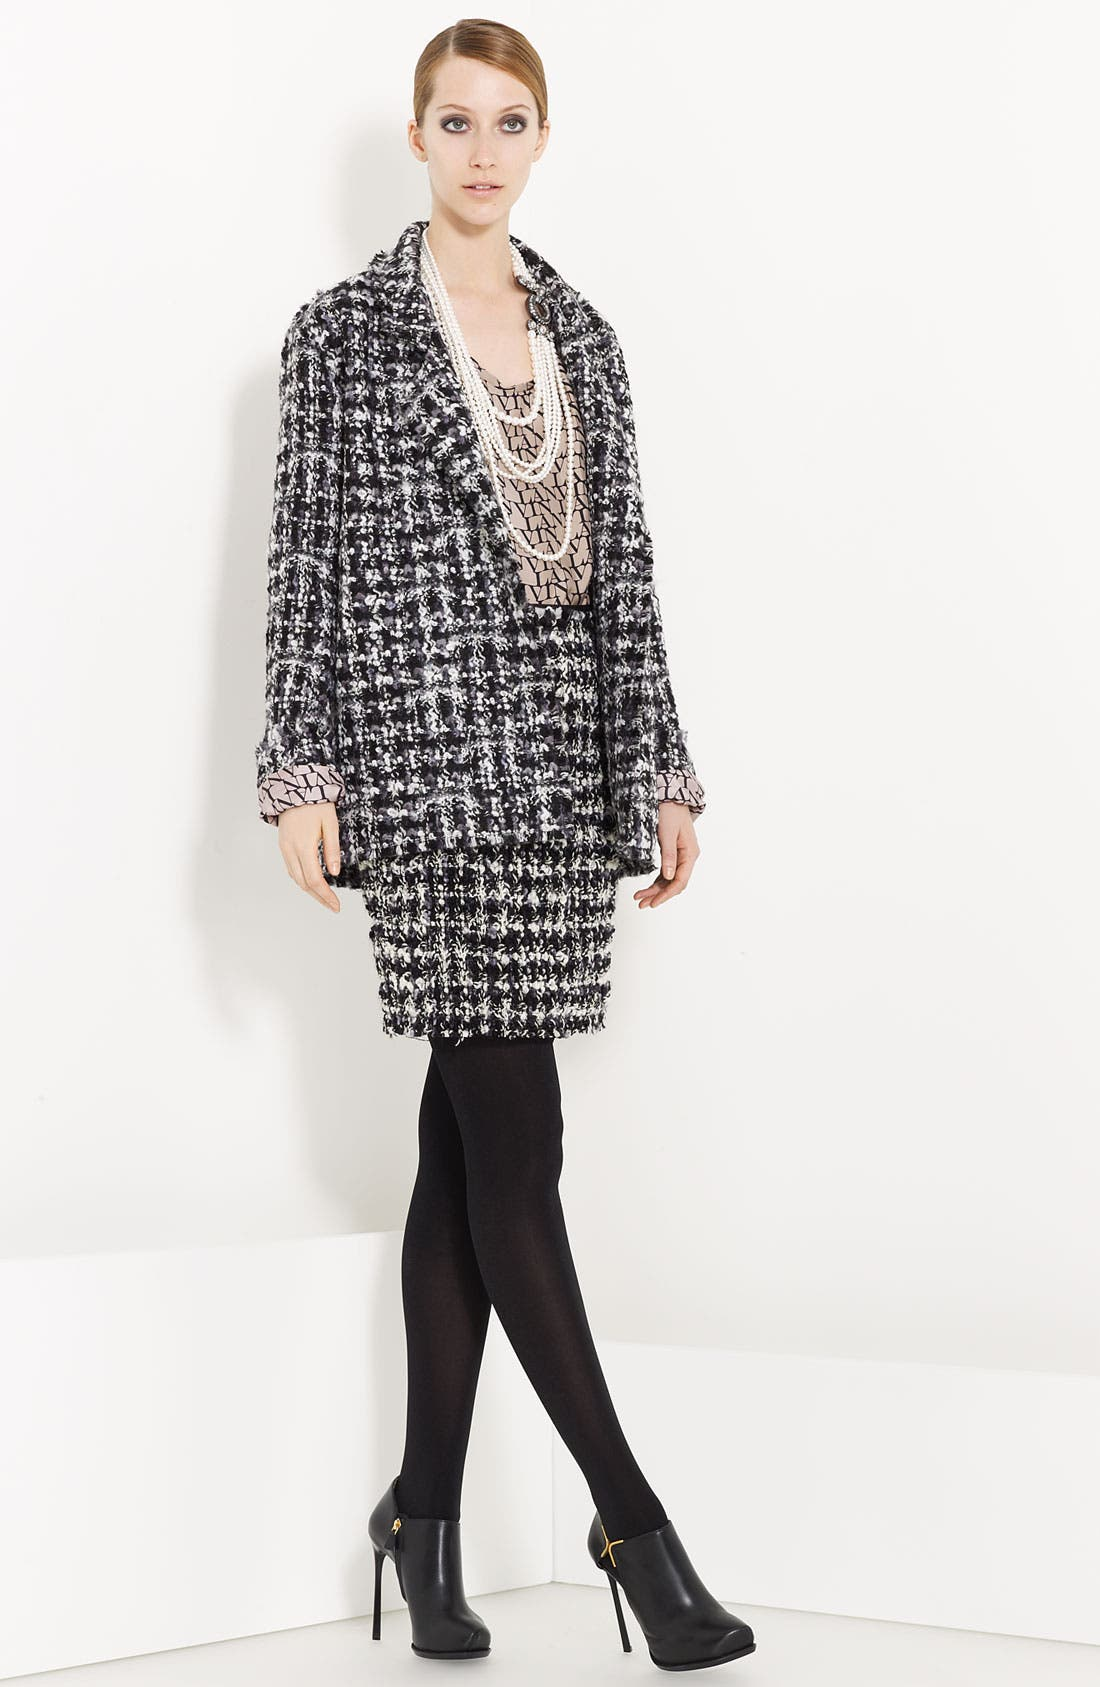 Alternate Image 1 Selected - Lanvin Silk Blouse & Bouclé Skirt with Faux Pearl Necklace